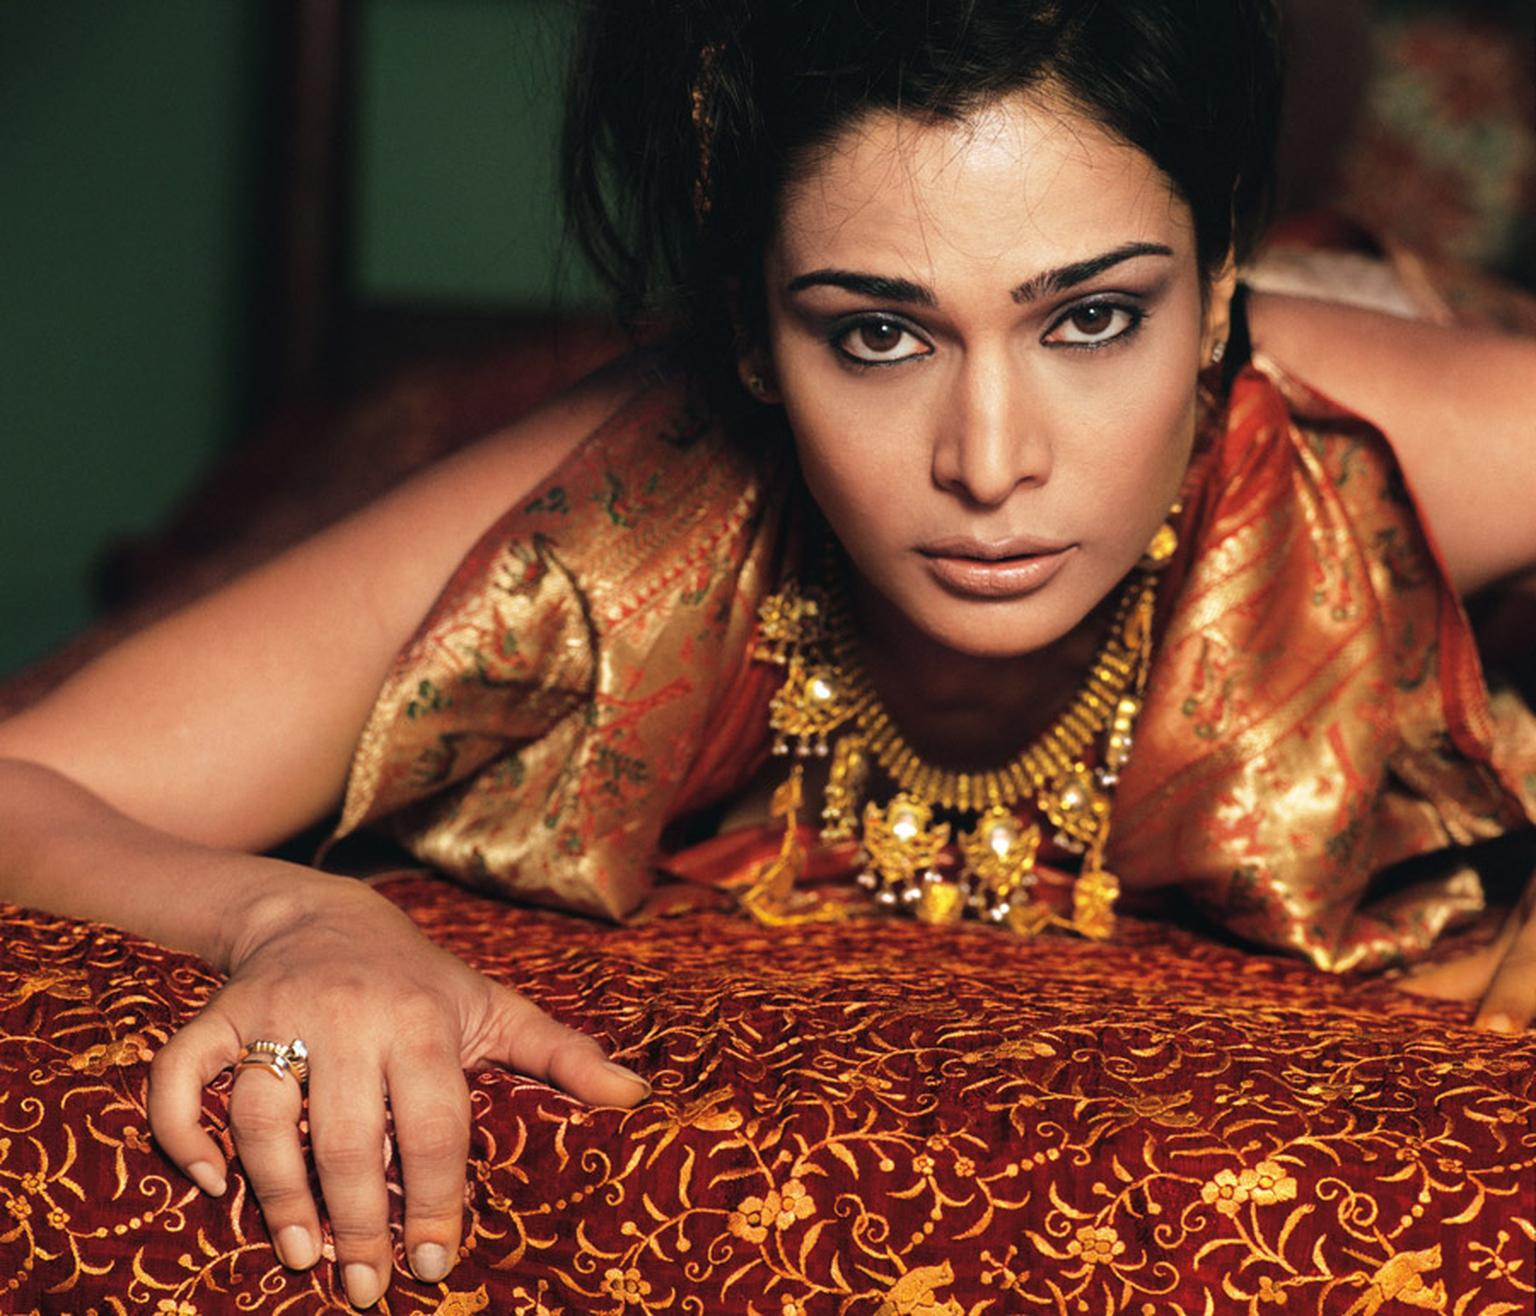 Amrapali Model-with-Amrapali-jewels1.jpg